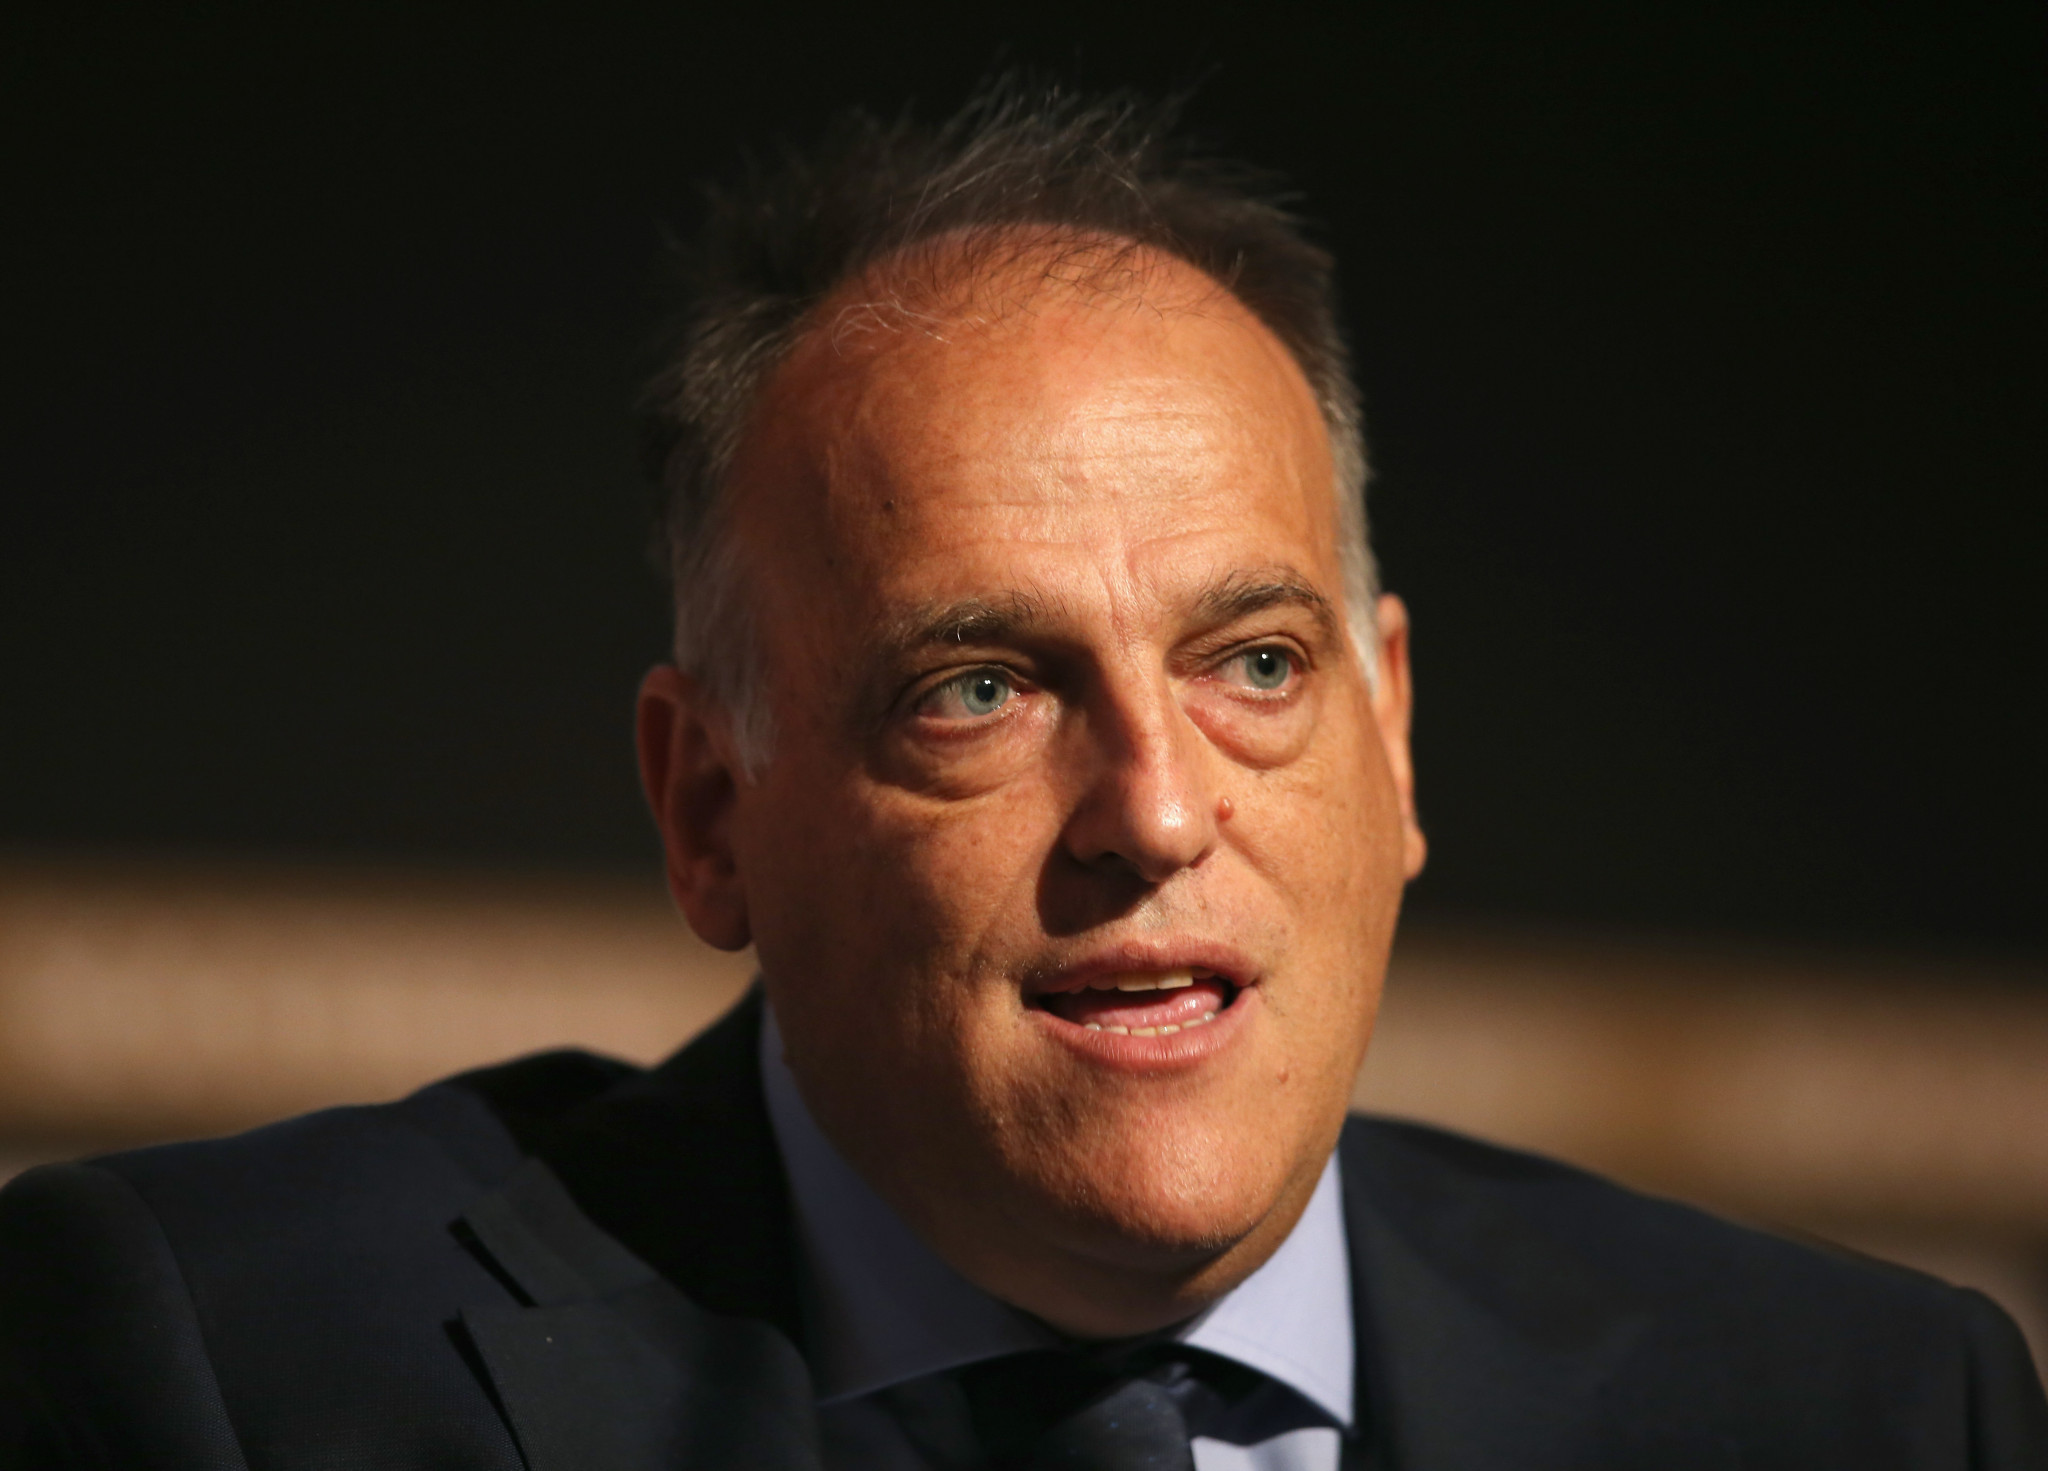 Javier Tebas, La Liga President, envisages investing in other Spanish sports federations ©Getty Images